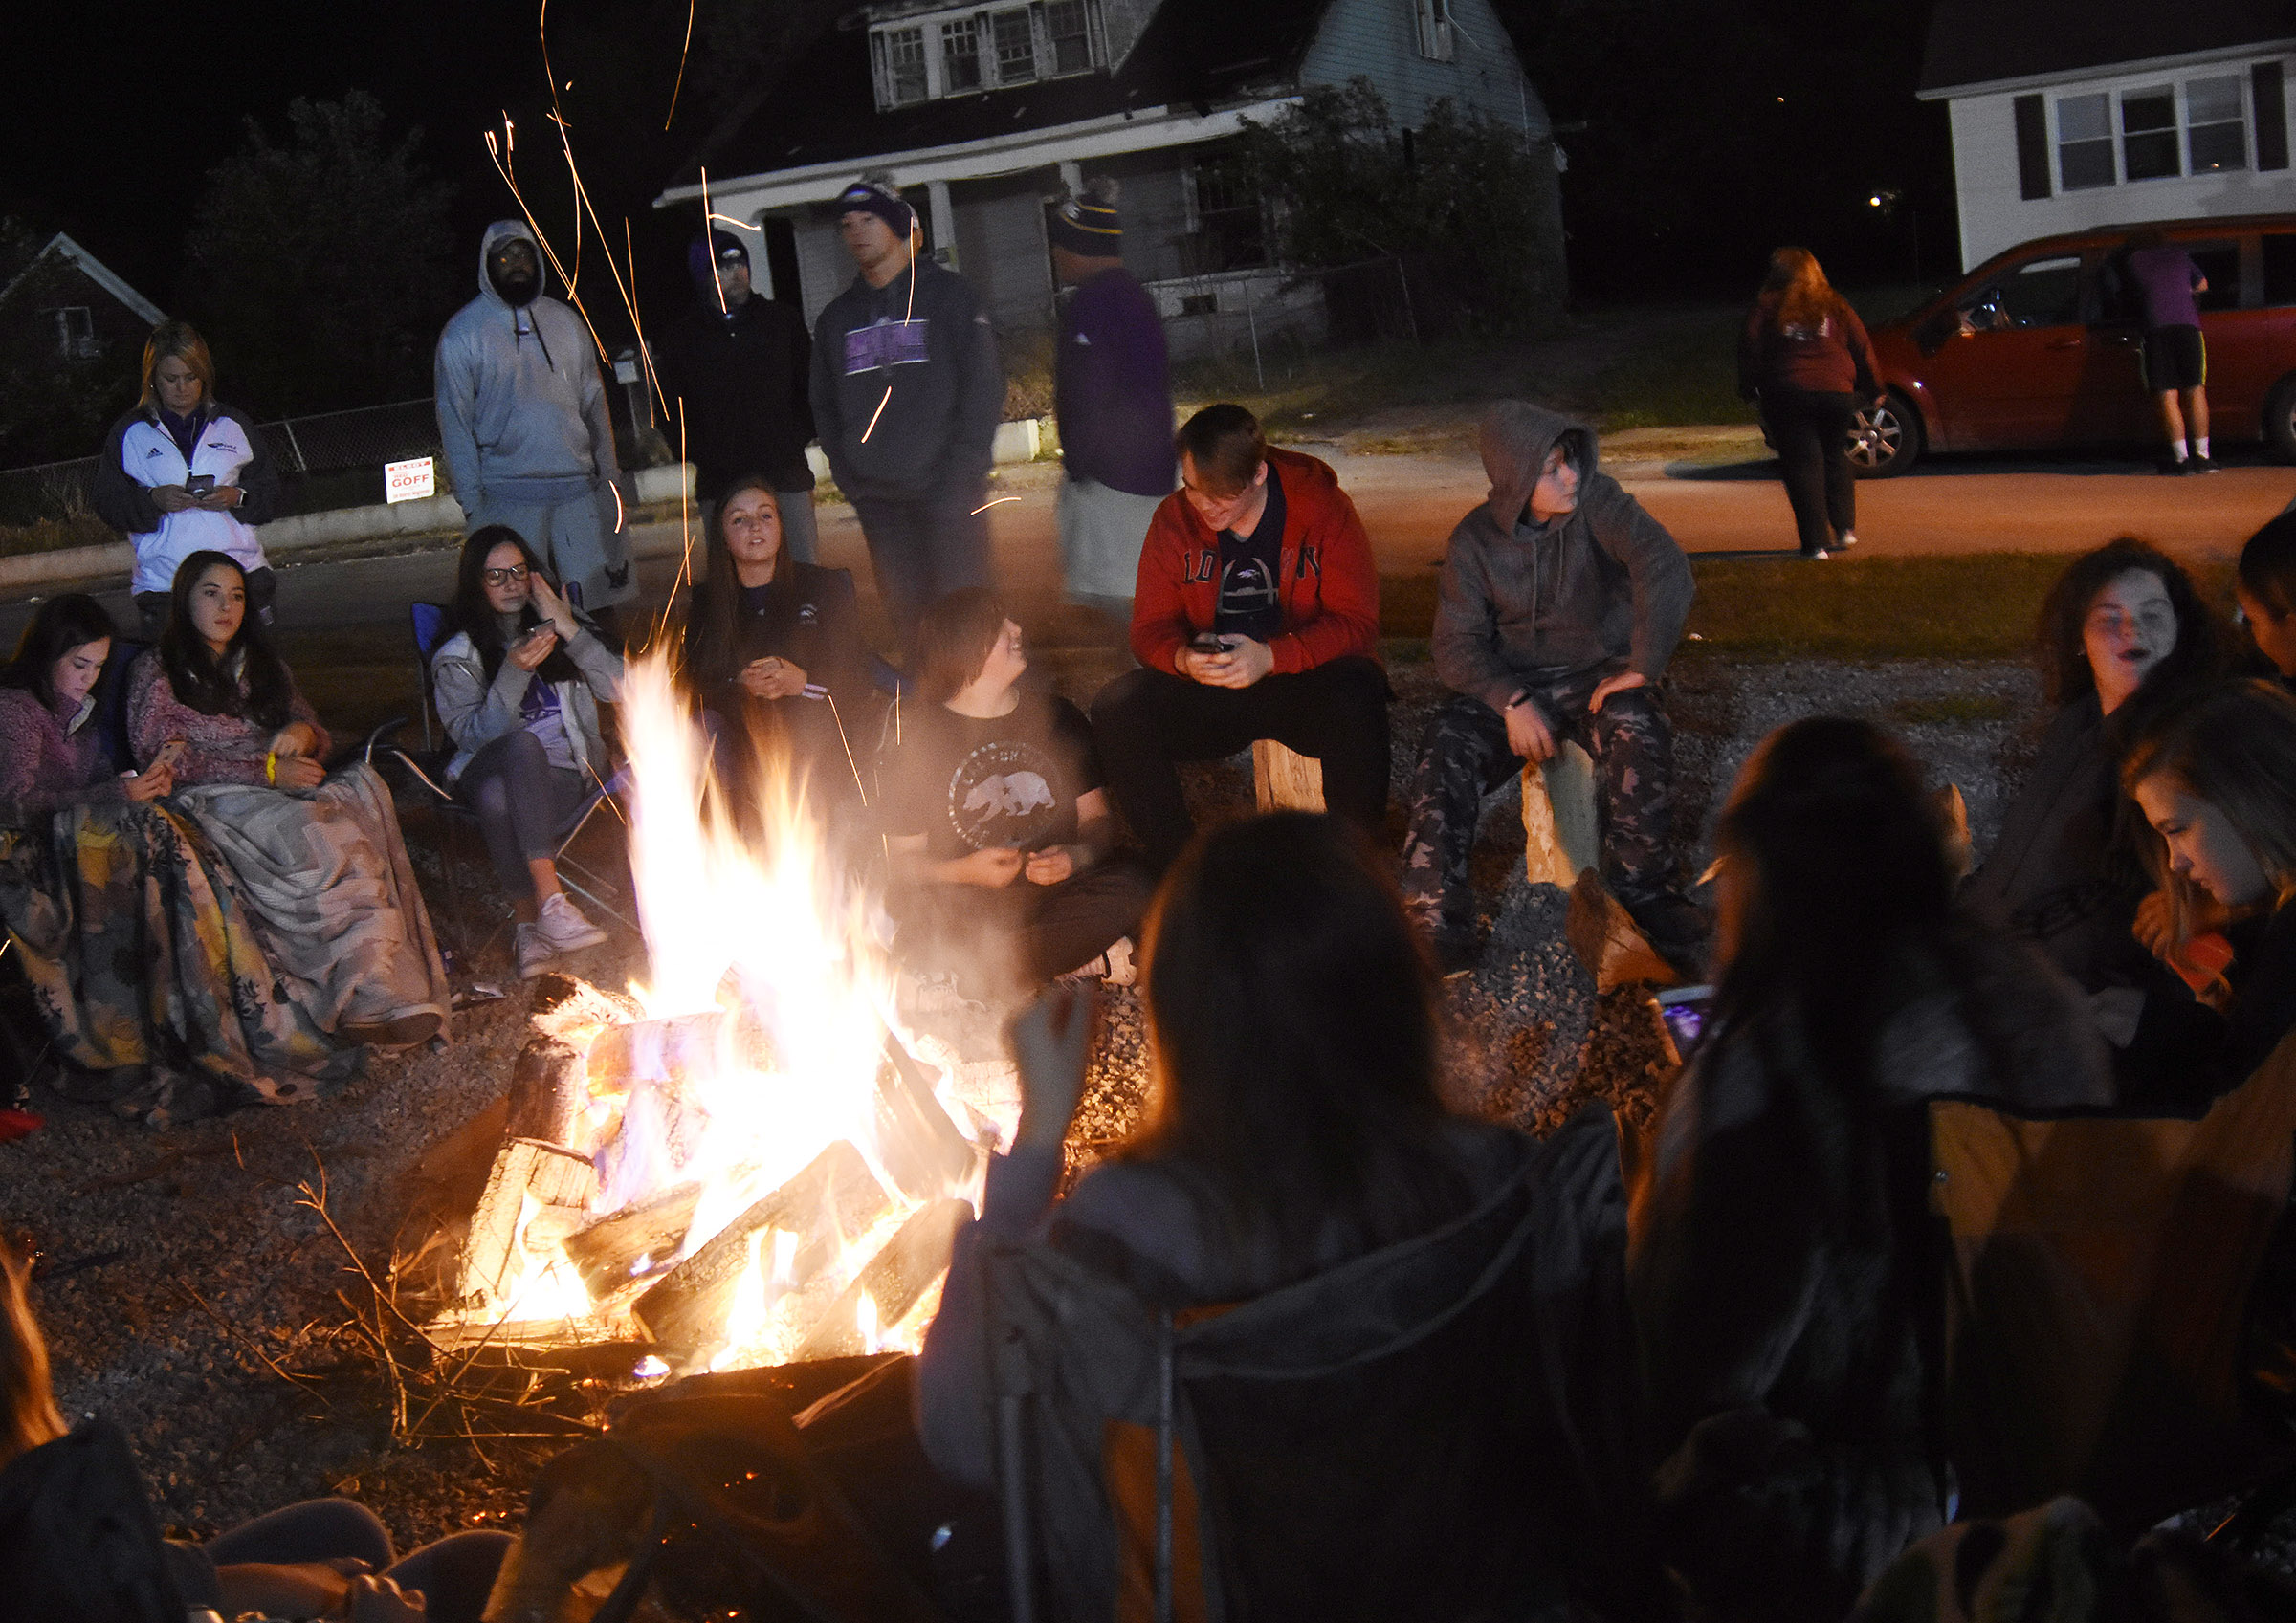 CHS students talk as they sit around the bonfire.